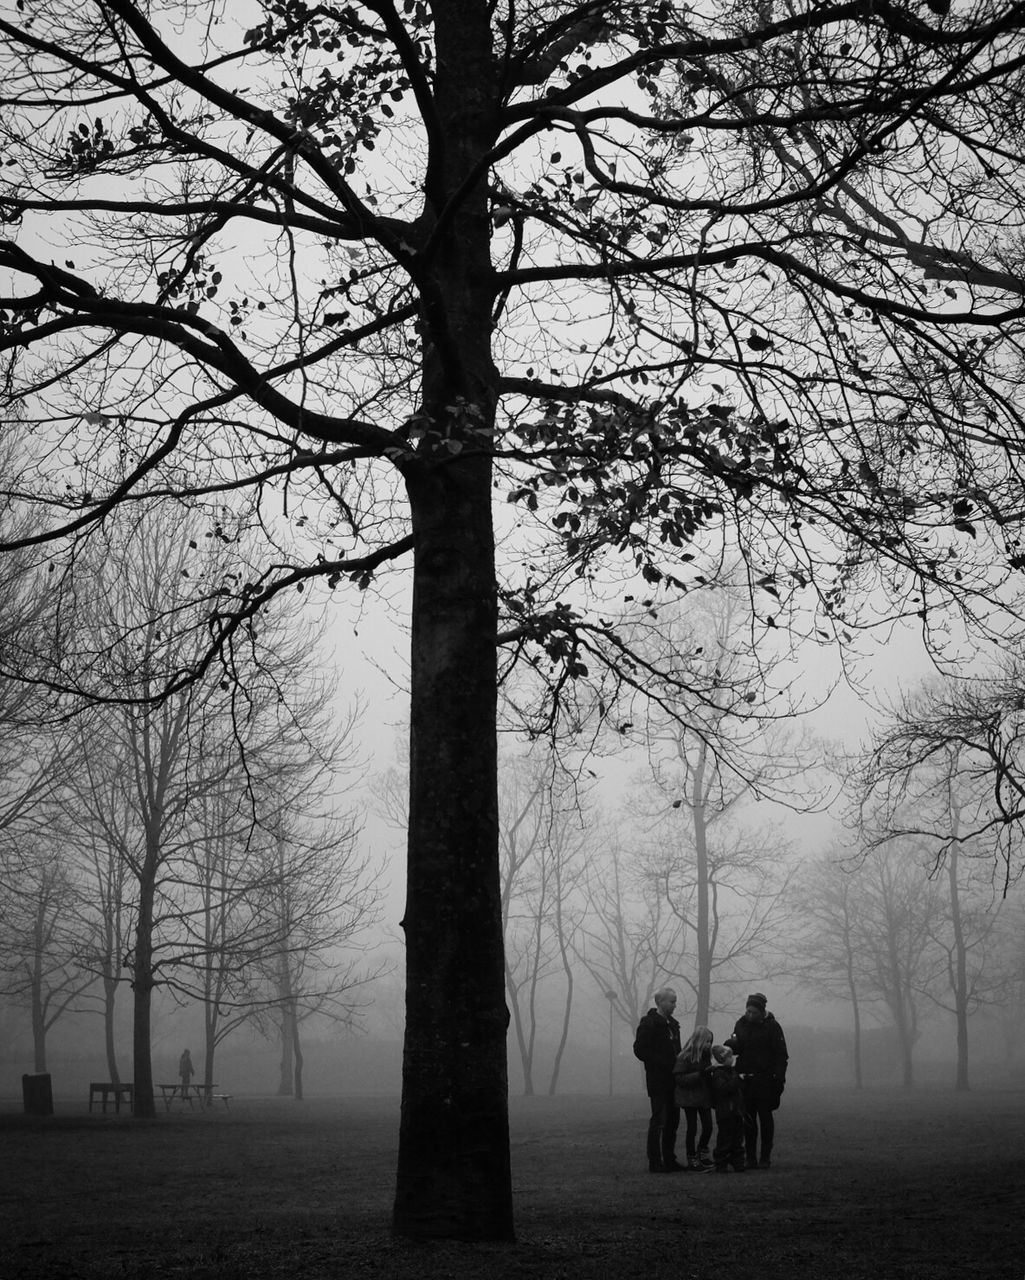 tree, bare tree, real people, men, branch, nature, leisure activity, togetherness, winter, fog, lifestyles, field, tree trunk, landscape, walking, beauty in nature, women, growth, outdoors, silhouette, tranquility, two people, cold temperature, scenics, day, friendship, warm clothing, mammal, sky, people